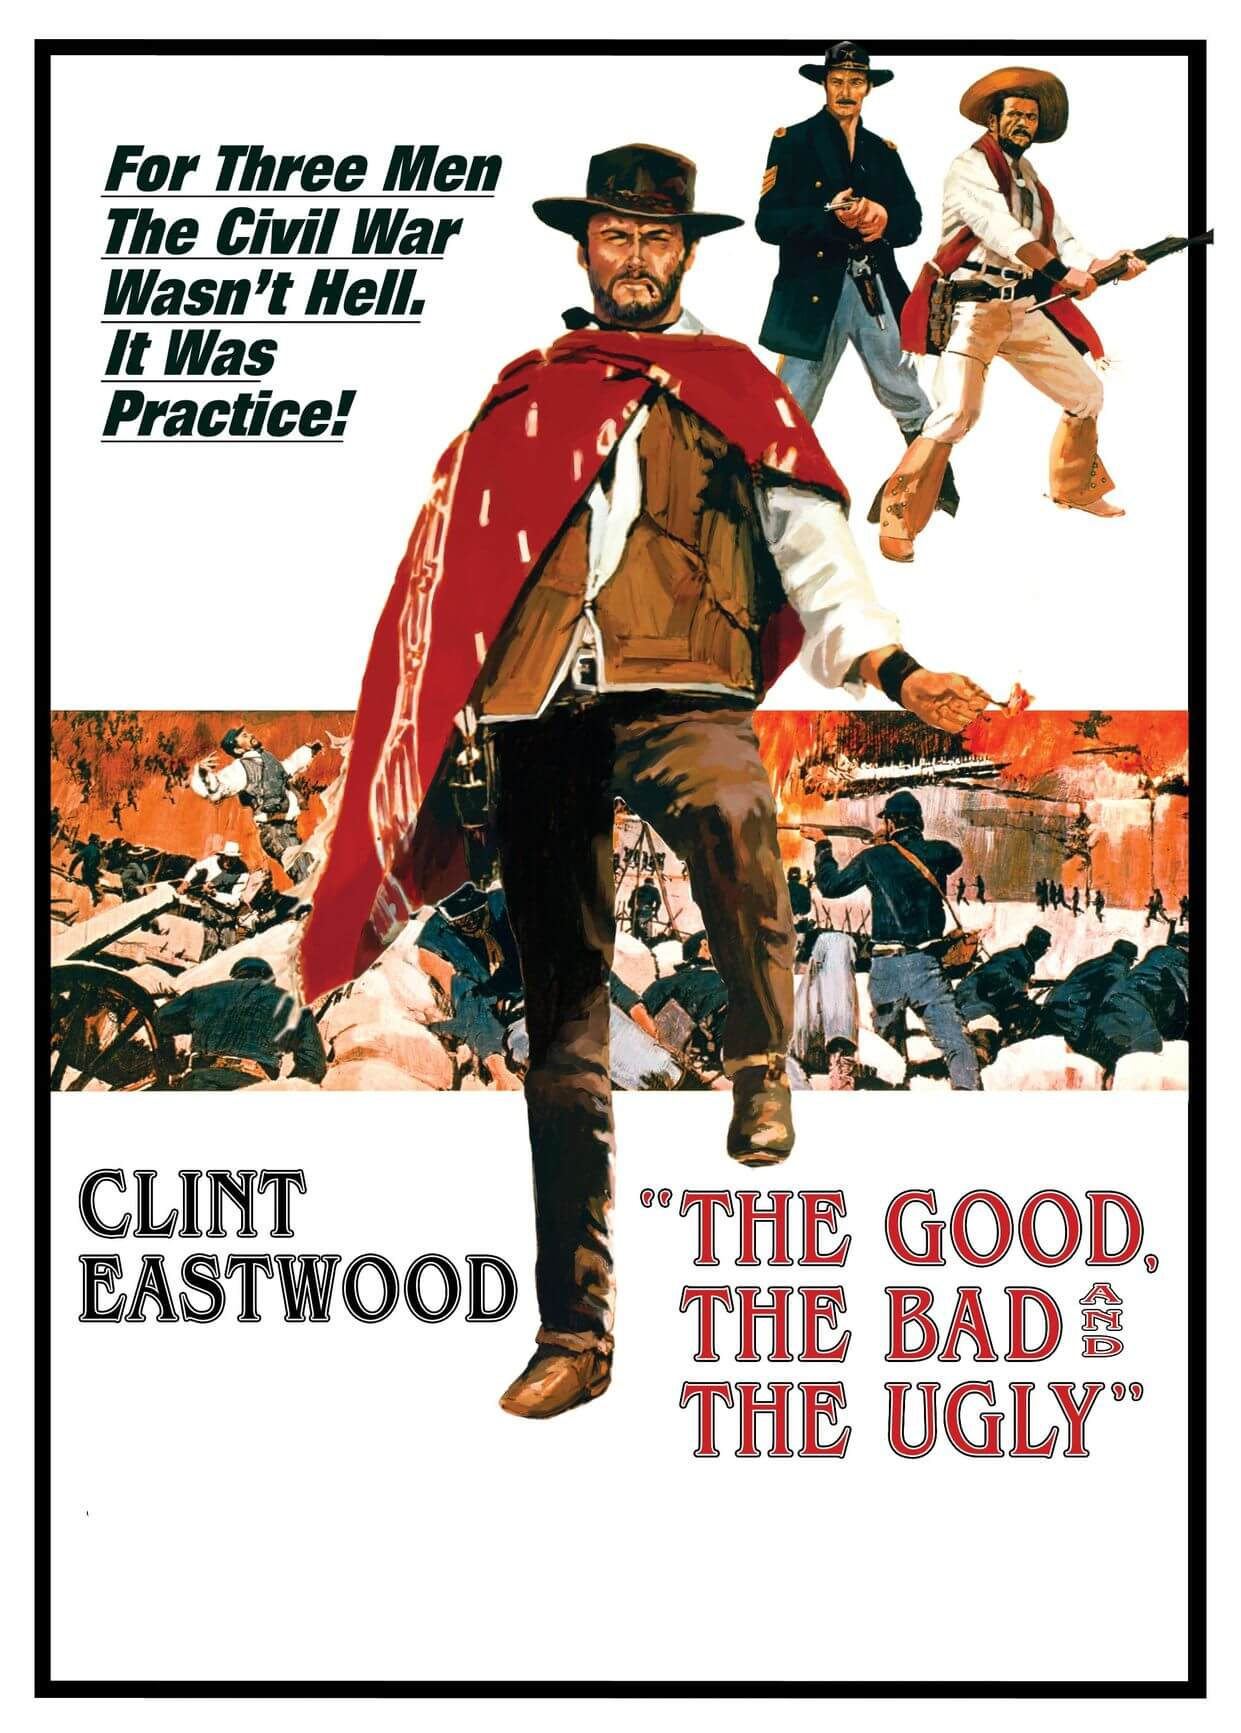 The Good, the Bad, and the Ugly (1966) İyi, Kötü ve Çirkin - Western Kovboy Filmi